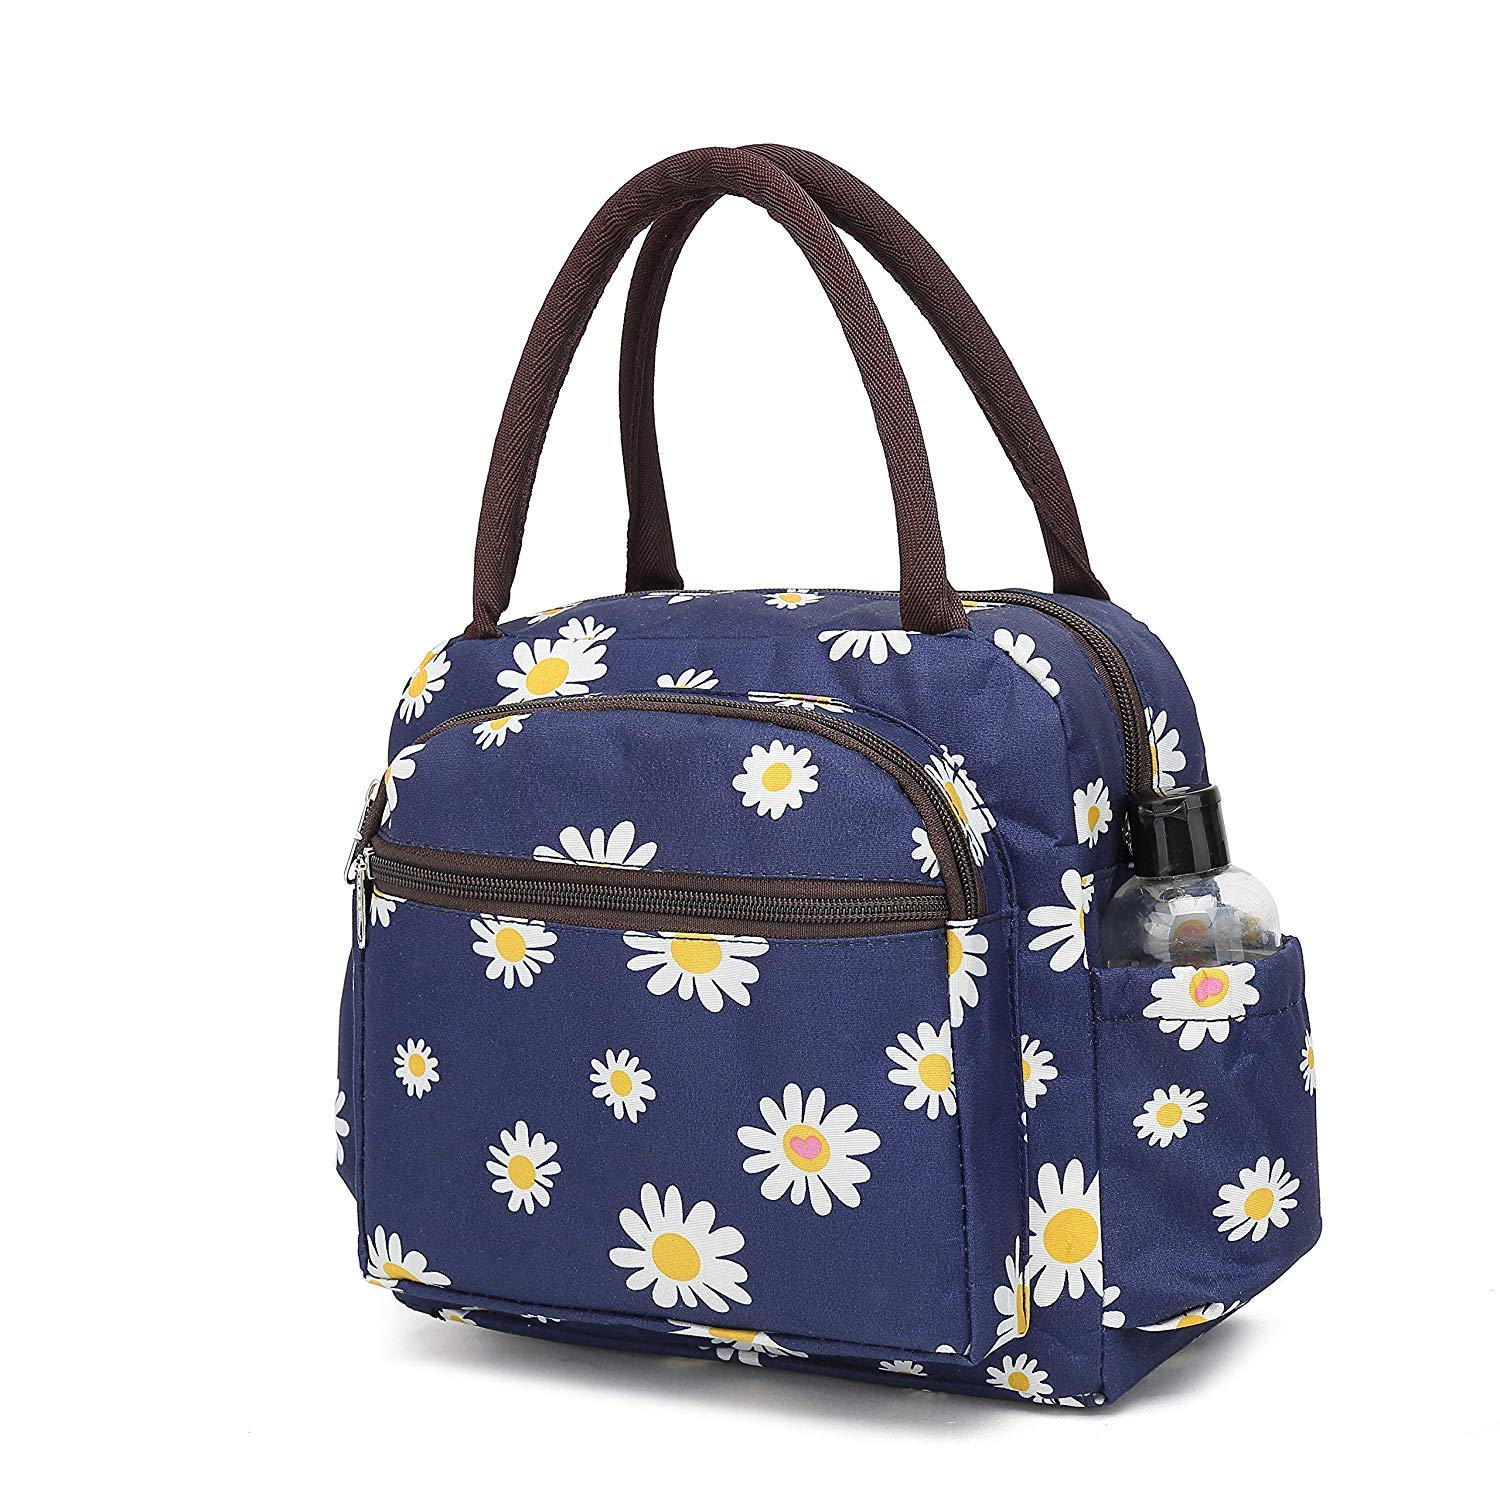 Lunch Bags for Women Men, Gayisic Lunch Tote Bag Lunch Container Holder Water-resistant Leakproof Lunch Box for women/Picnic/Boating/Beach/Fishing/Work